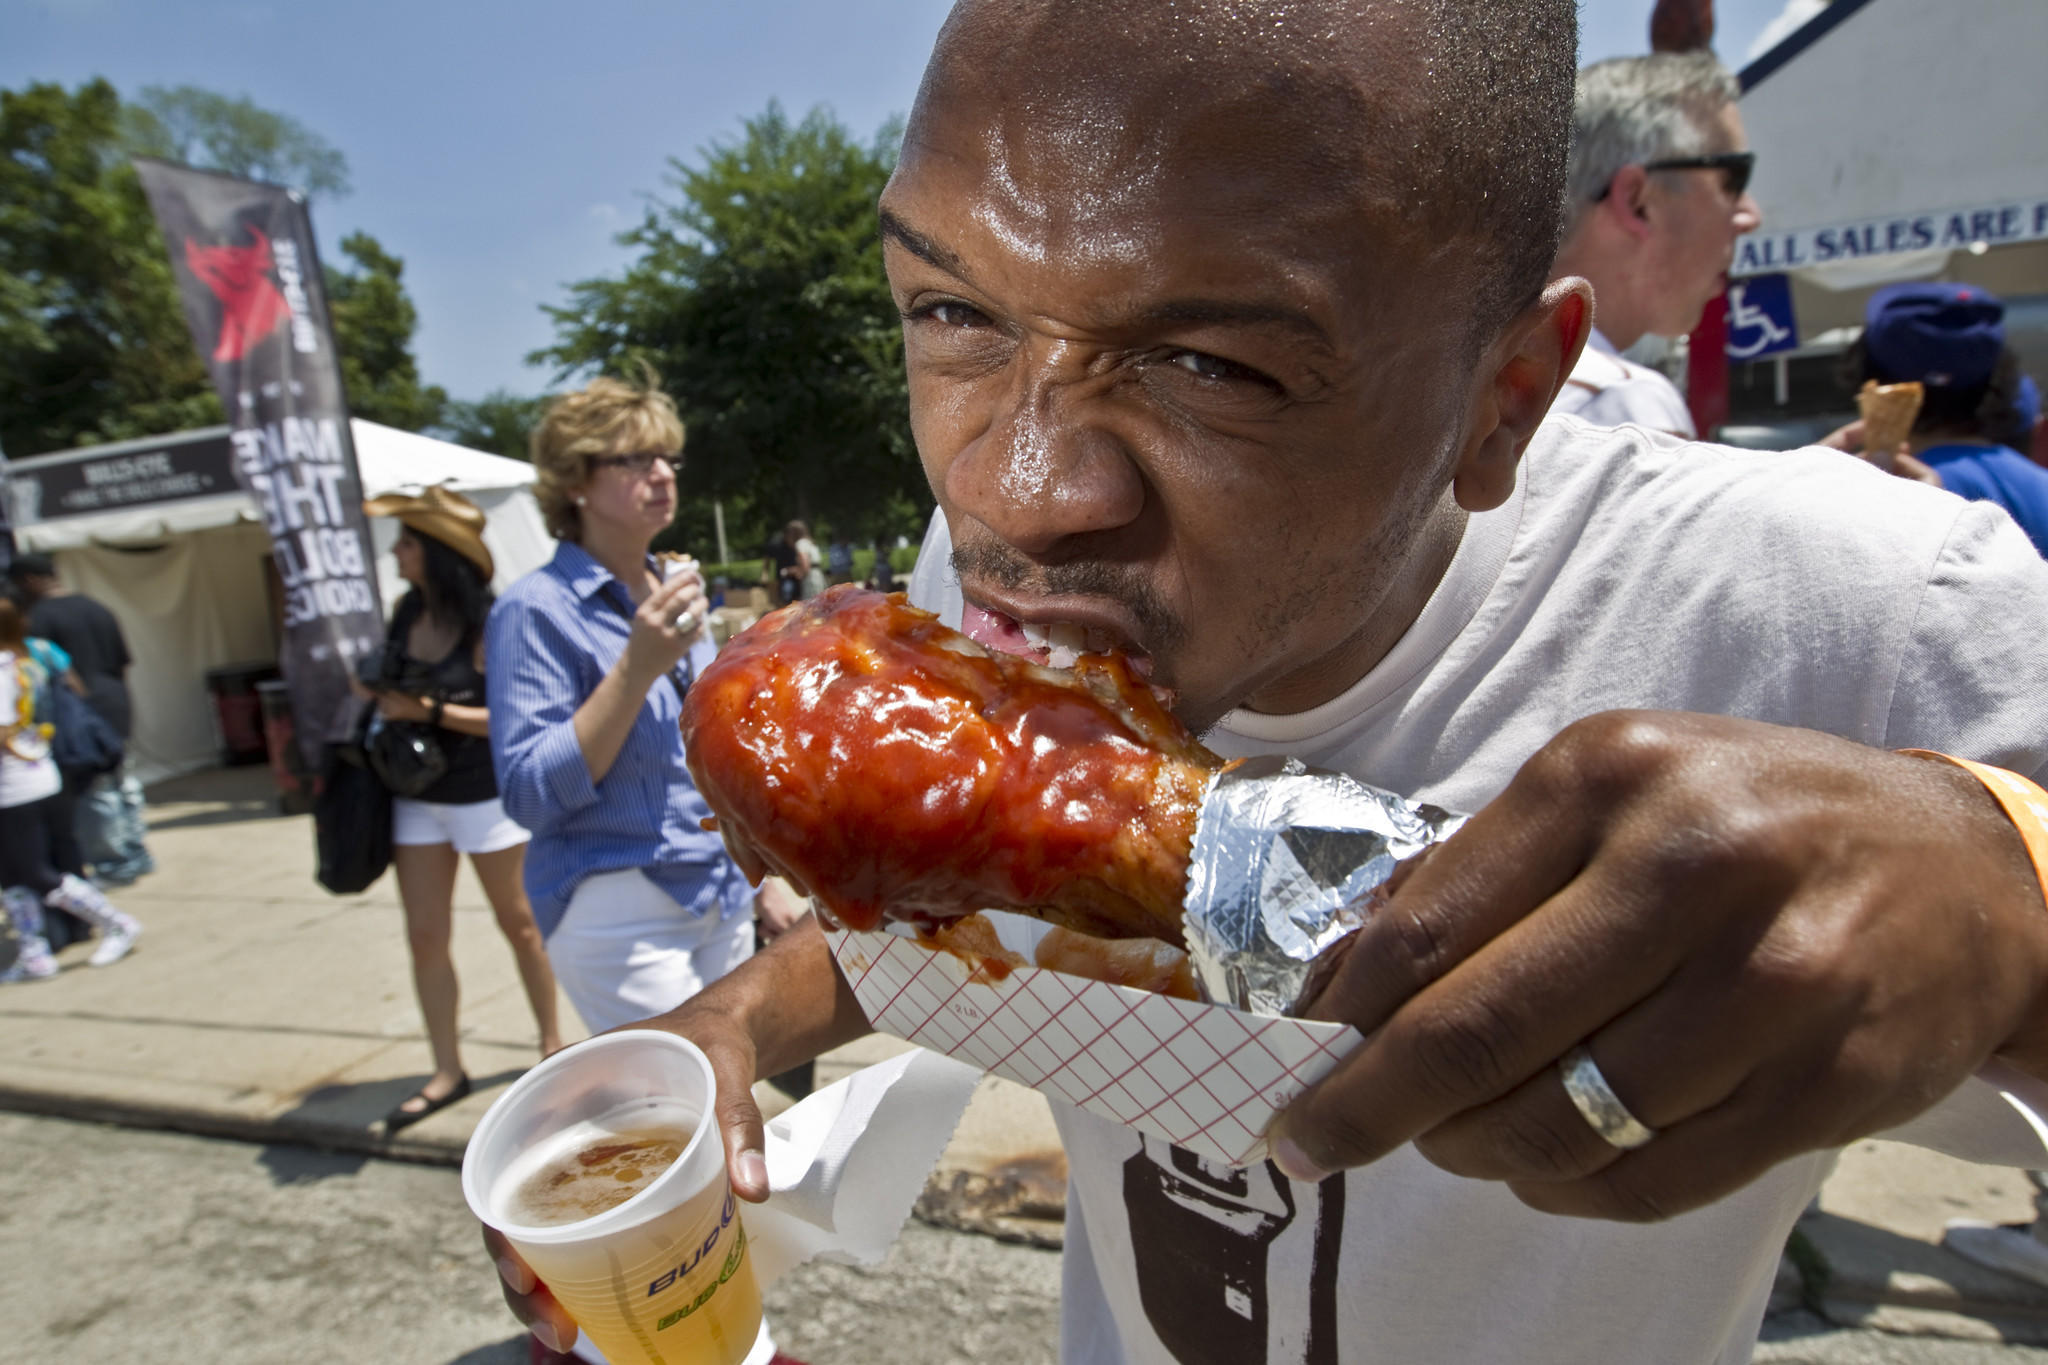 Gregory Edwards, from Chicago, enjoys a turkey leg at Taste of Chicago.